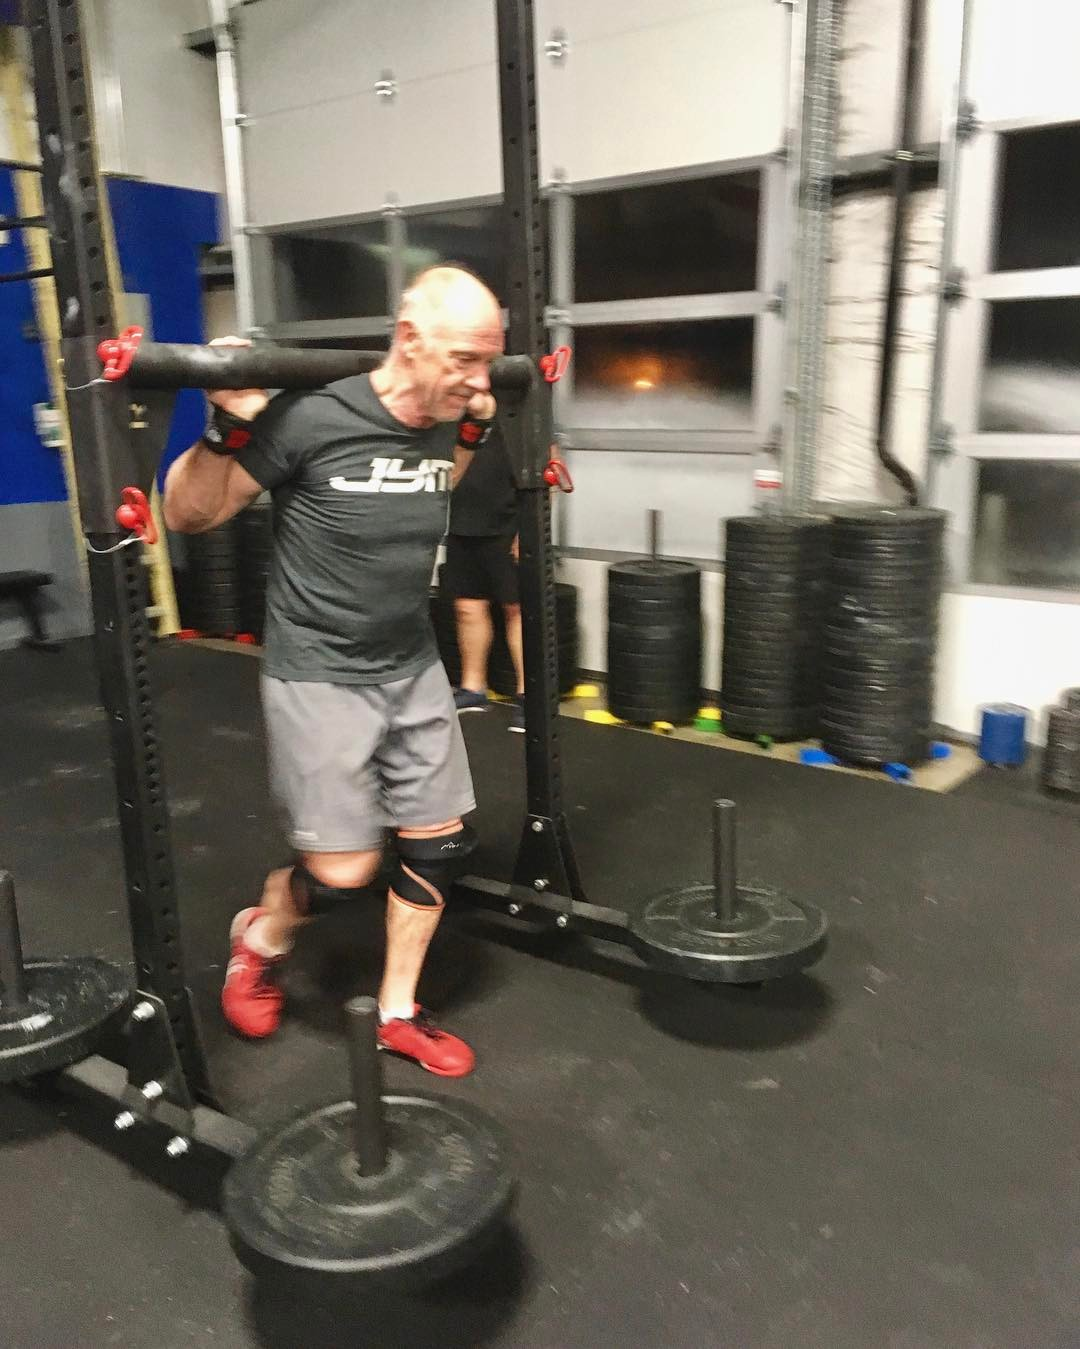 63 years old and killin' it at 5:30a everyday 💪🏽 . 📸: @amyludz . . #type44 #type44strong #crossfit #reebok #fitaid #rogue #roguefitness #yoke #inbend #localize #centraloregon #boomshockalaka #fitness #powerlifting #training #wod #strength #nike #metcon #bendoregon #fitfam